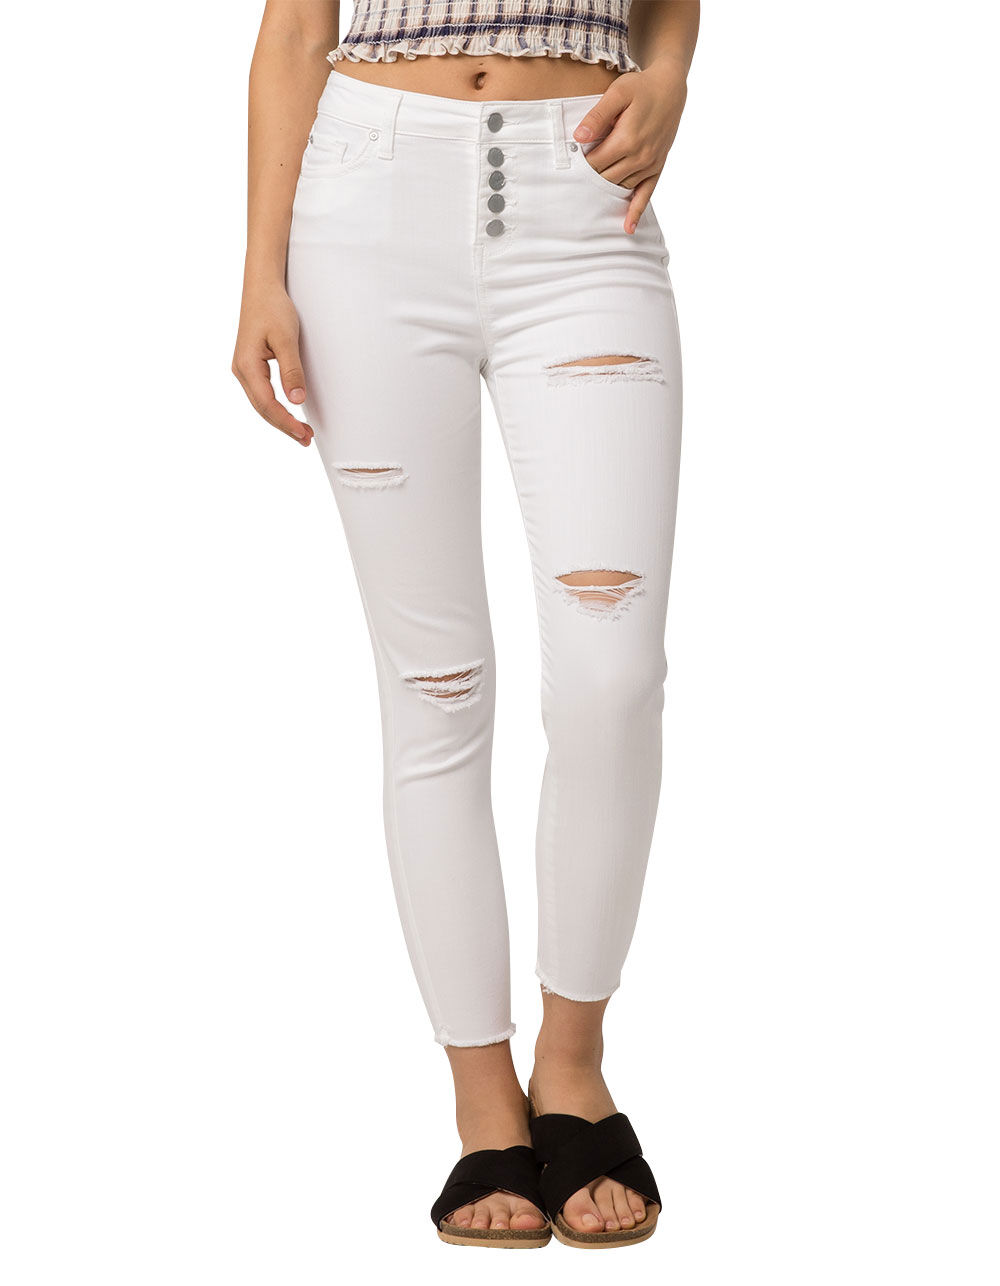 IVY & MAIN FRAY ANKLE RIPPED JEANS